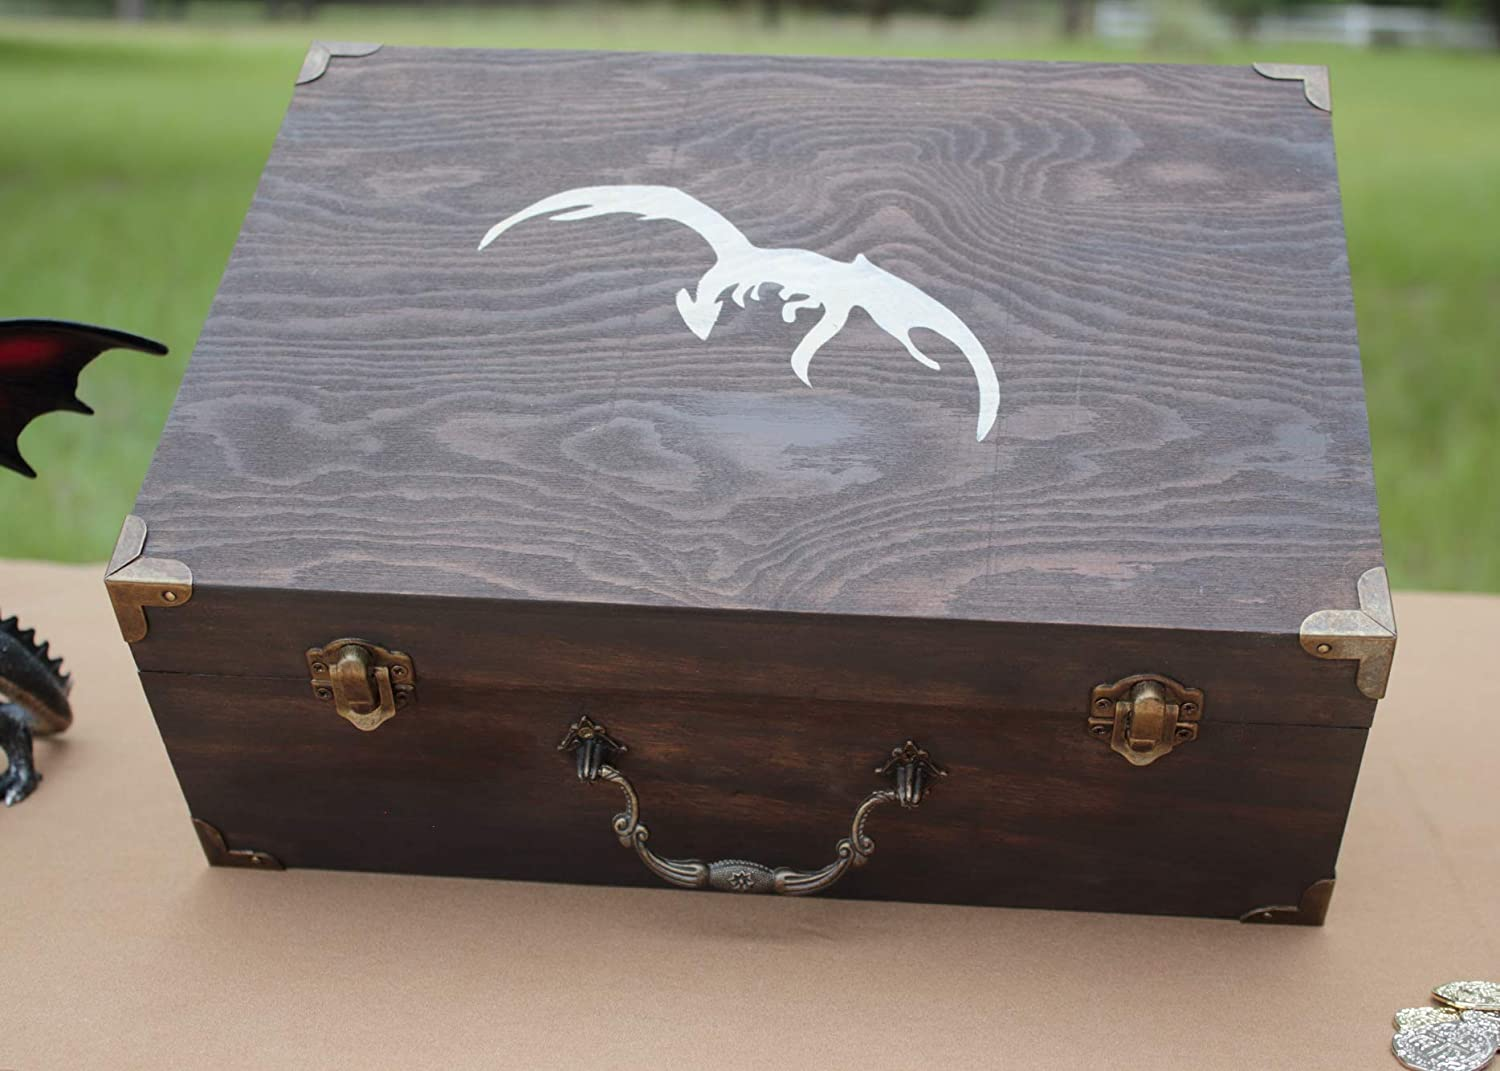 Large Dragon Wooden Box Hand Painted for Displaying Dragon Egg (Eggs NOT included)